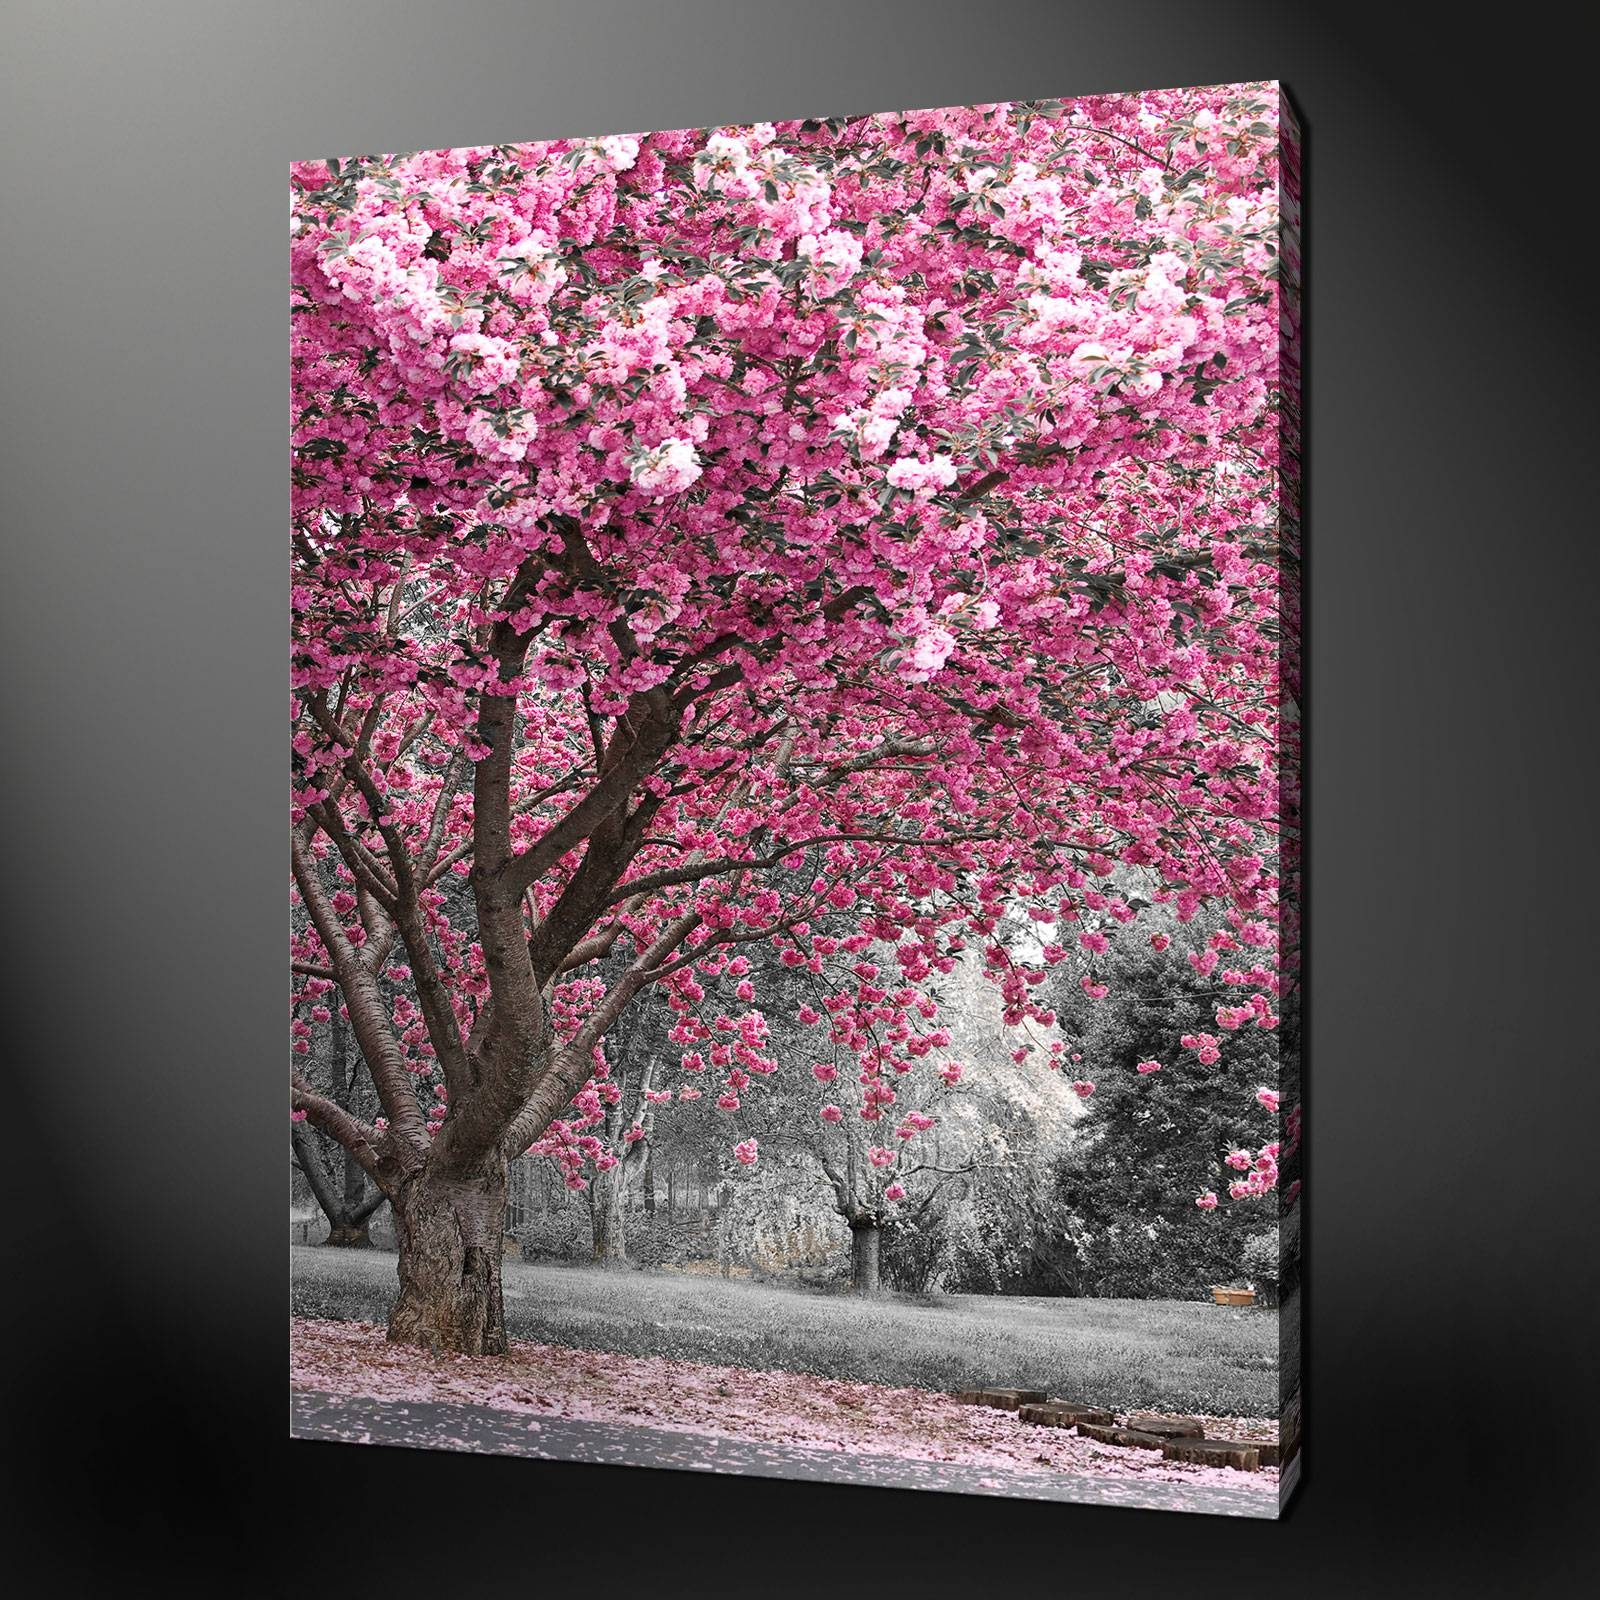 Wall Art Designs: Pink Wall Art Wonderful Pictures Beautiful Pink Within Most Recently Released Pink And Grey Wall Art (View 17 of 20)